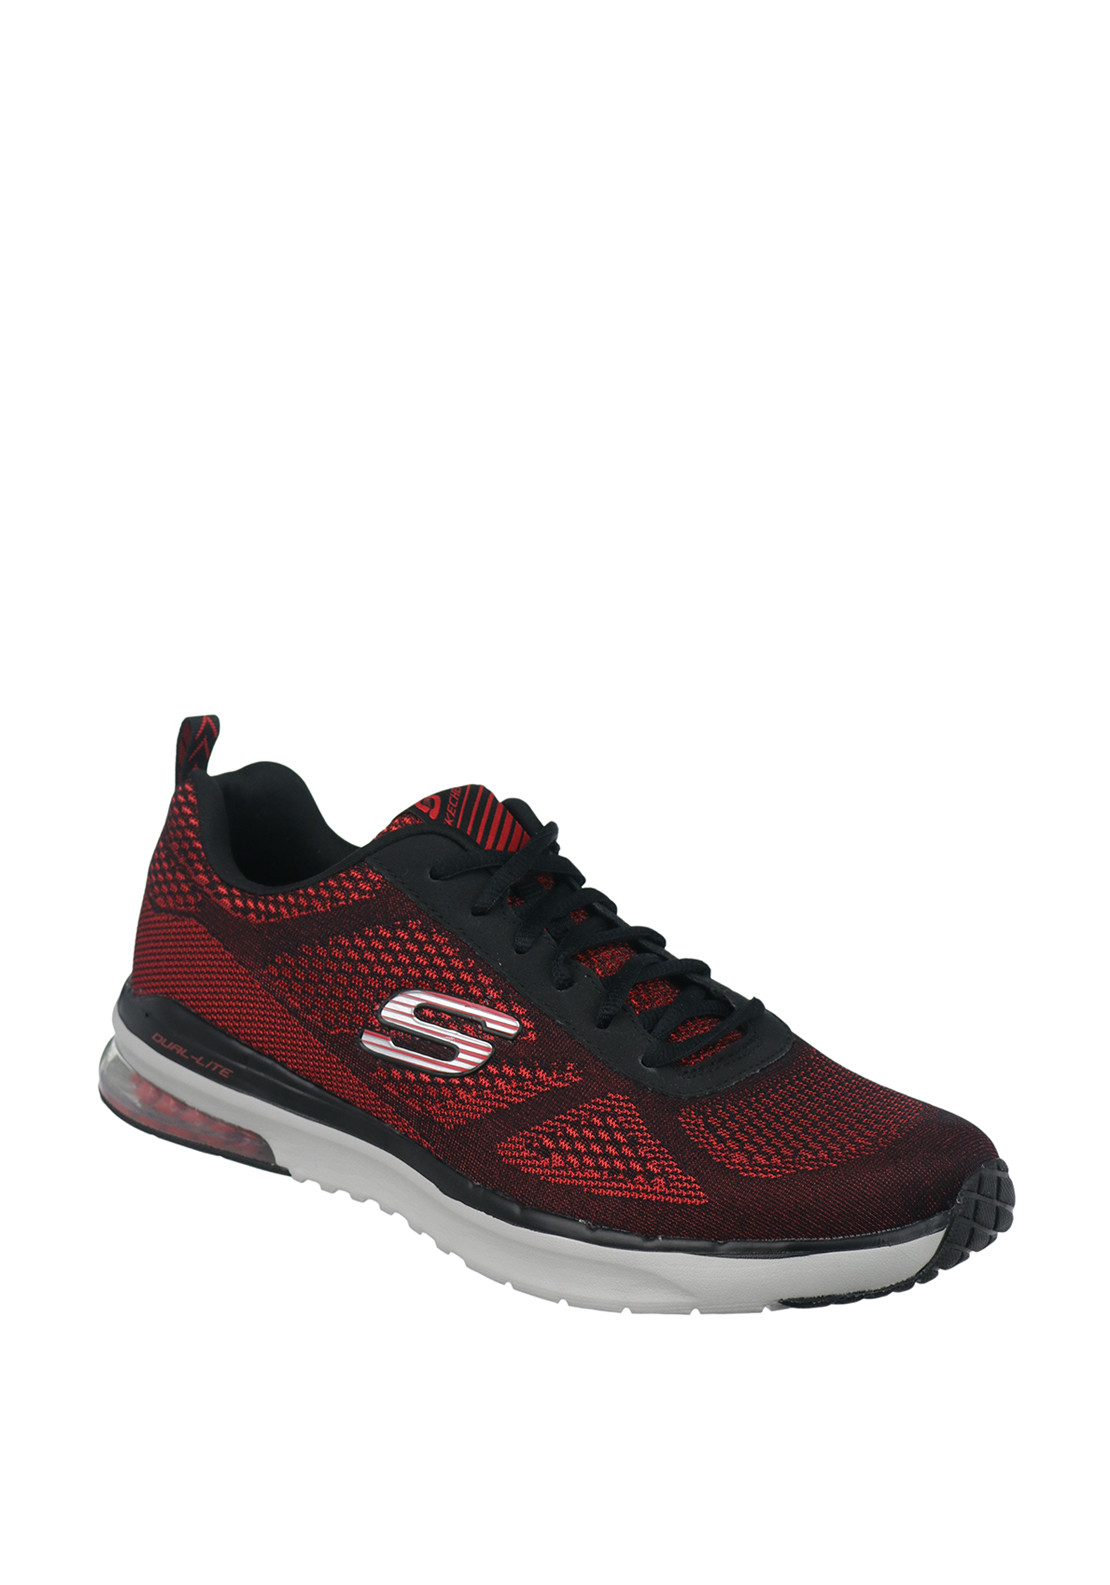 Skechers Mens Dual Lite Trainers, Red & Black